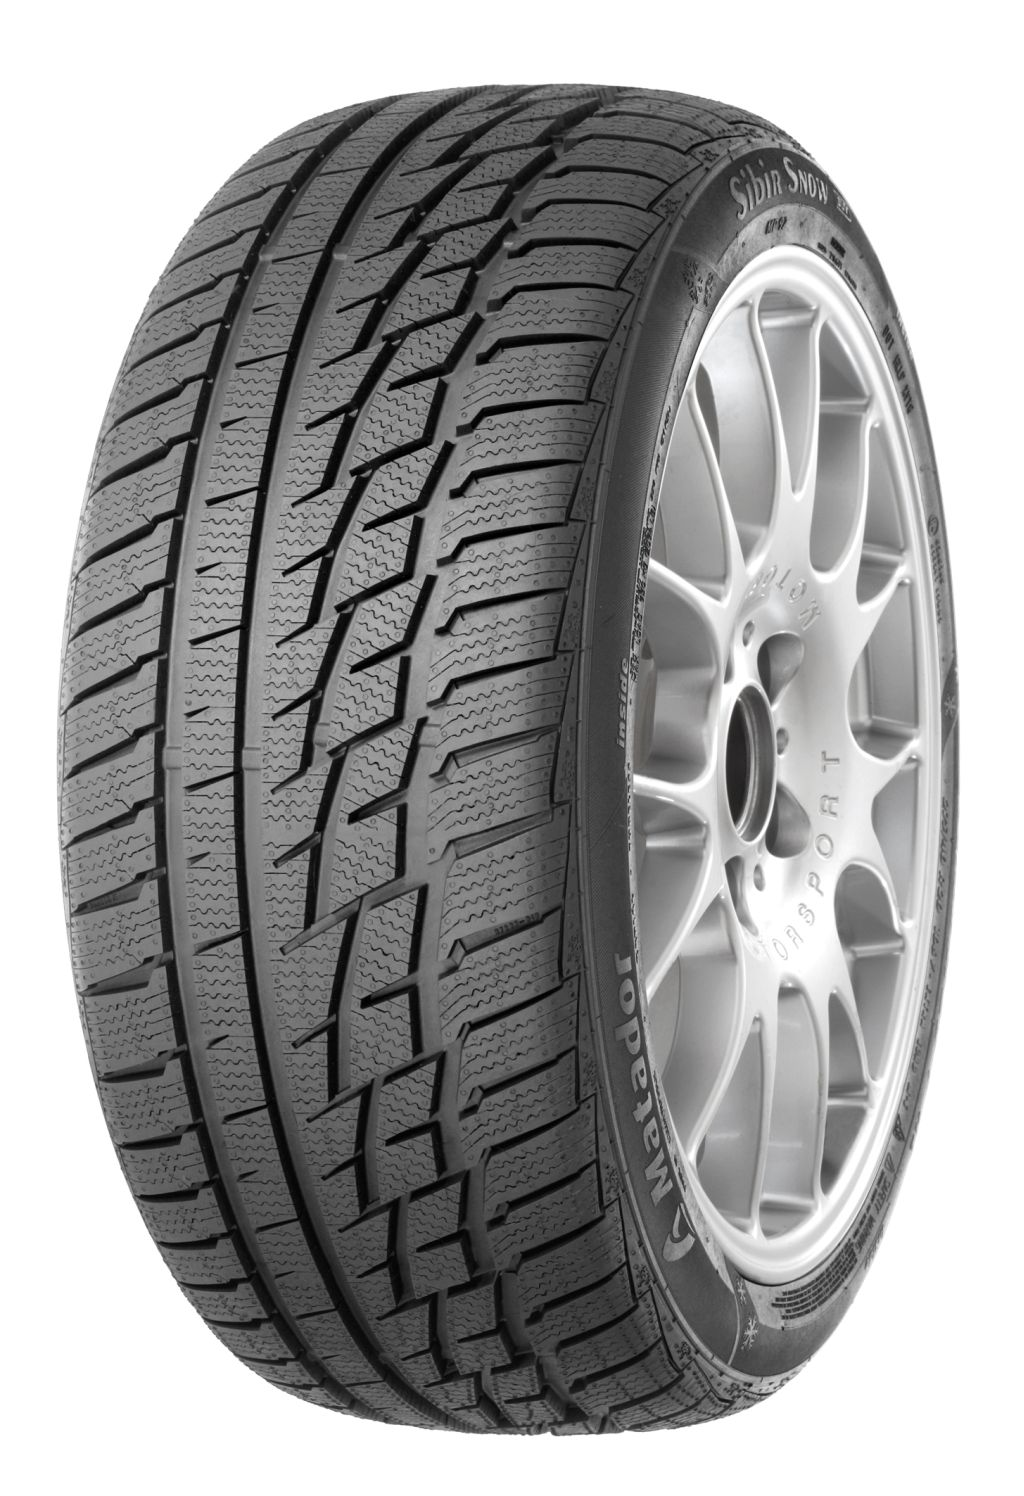 265/70R16 112T, Matador, MP92 Sibir Snow